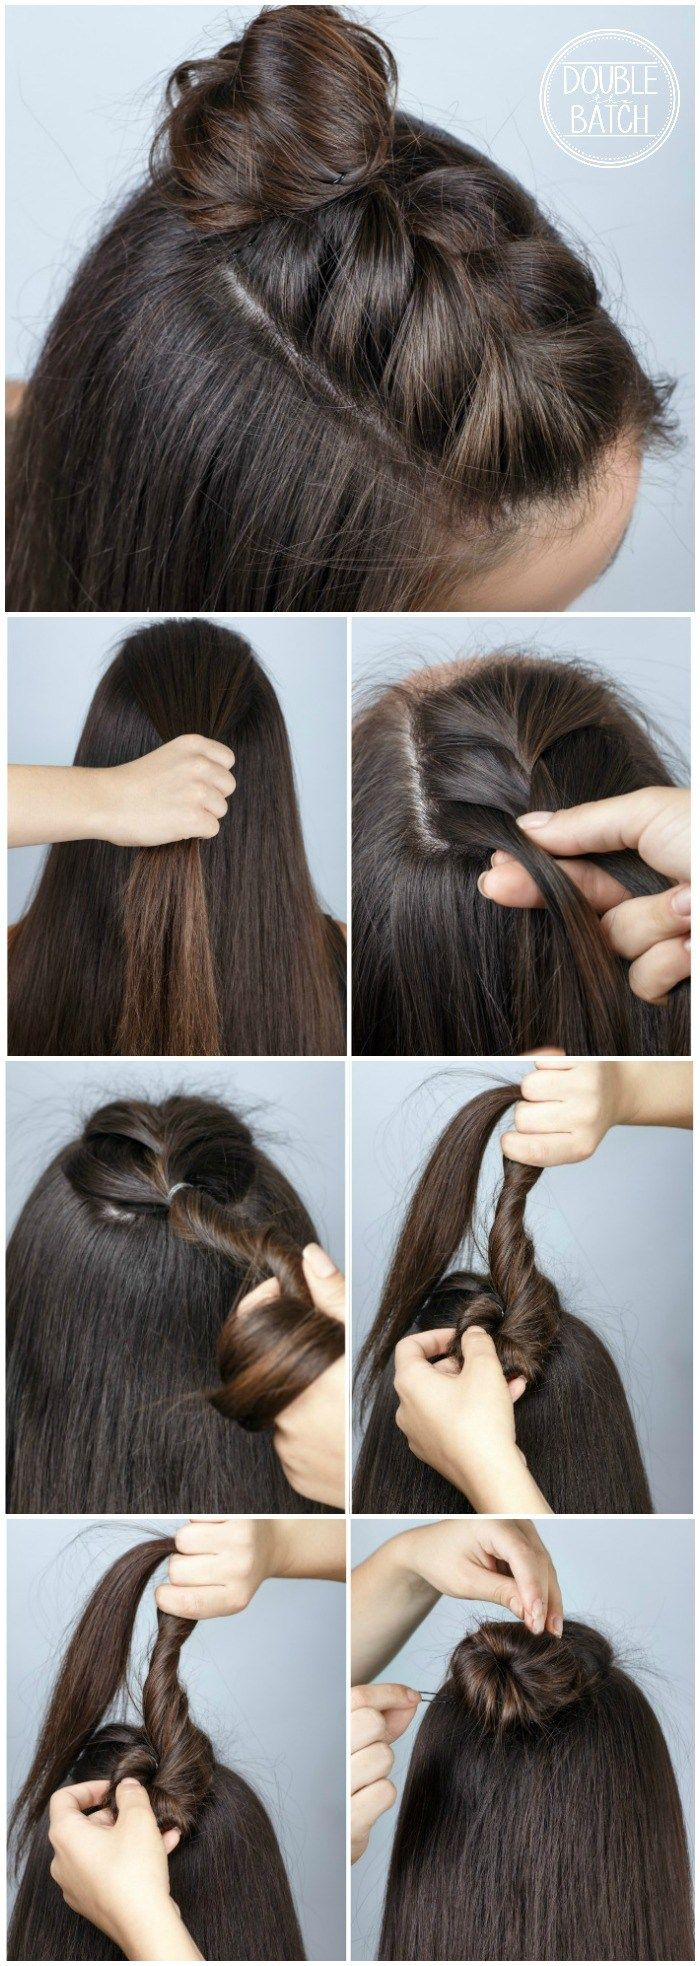 cute easy homecoming hairstyles longhairstyle mediumhairstyle shorthairstyle stylishhairstyle trendinghairstyles  also rh pinterest